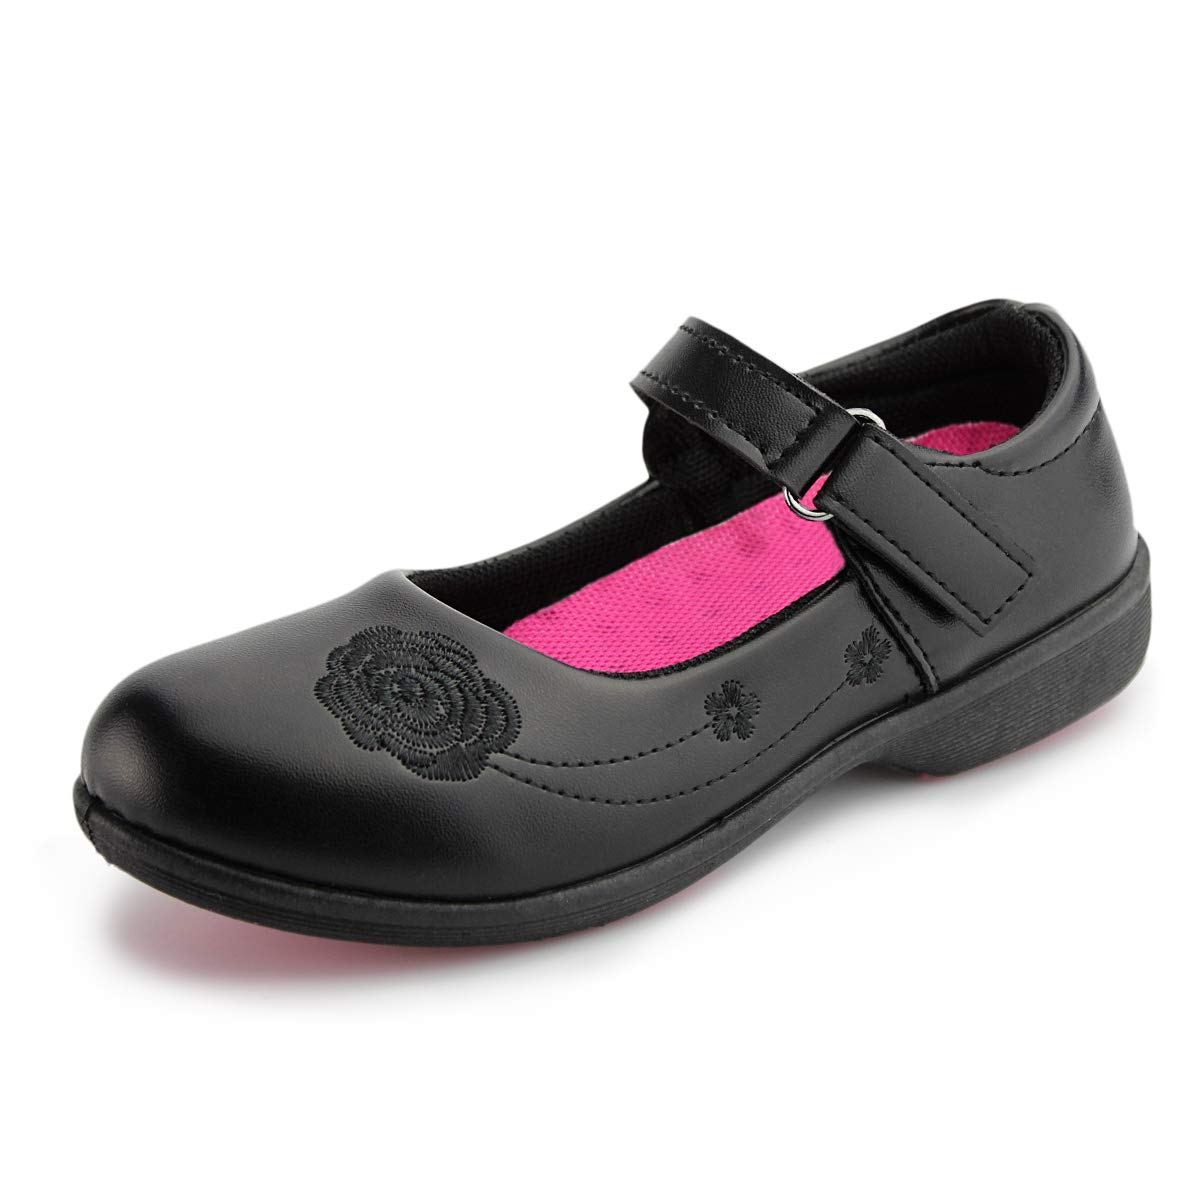 Hawkwell Girl's Strap School Uniform Dress Shoe Mary Jane Flat (Toddler/Little Kid), Black PU, 1 M US